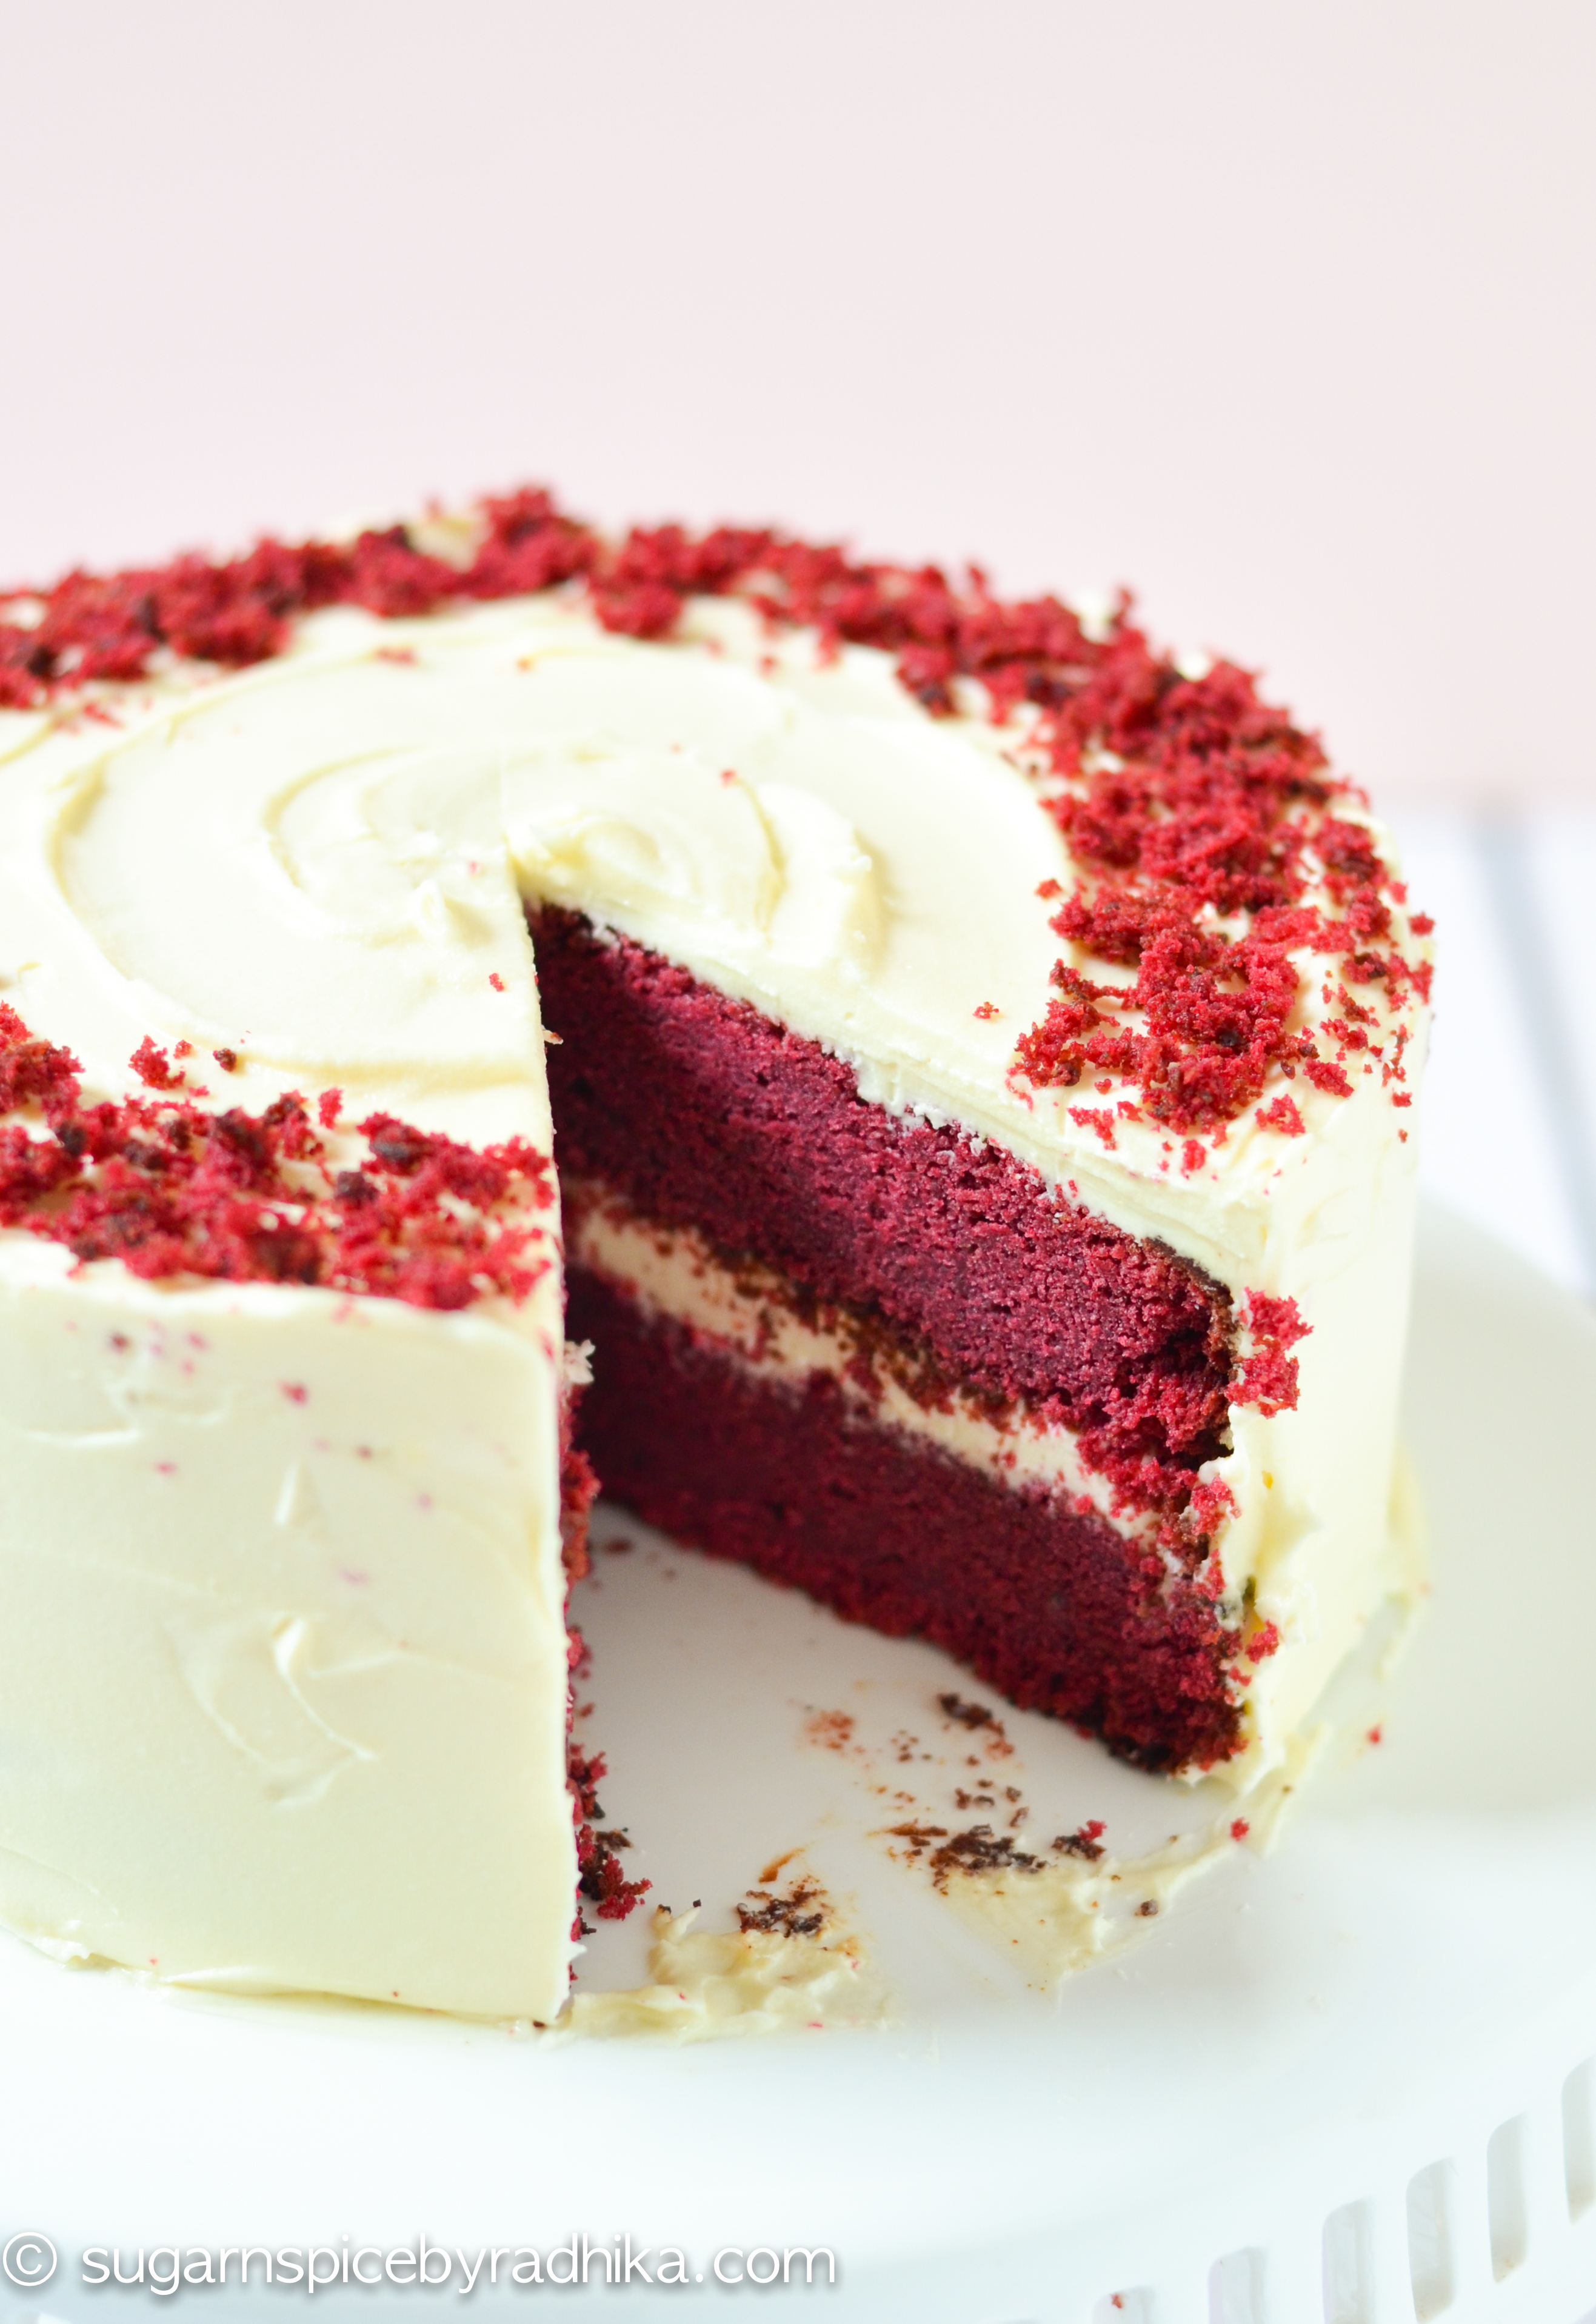 RedVelvet Cake with Cream Cheese Frosting (eggless)